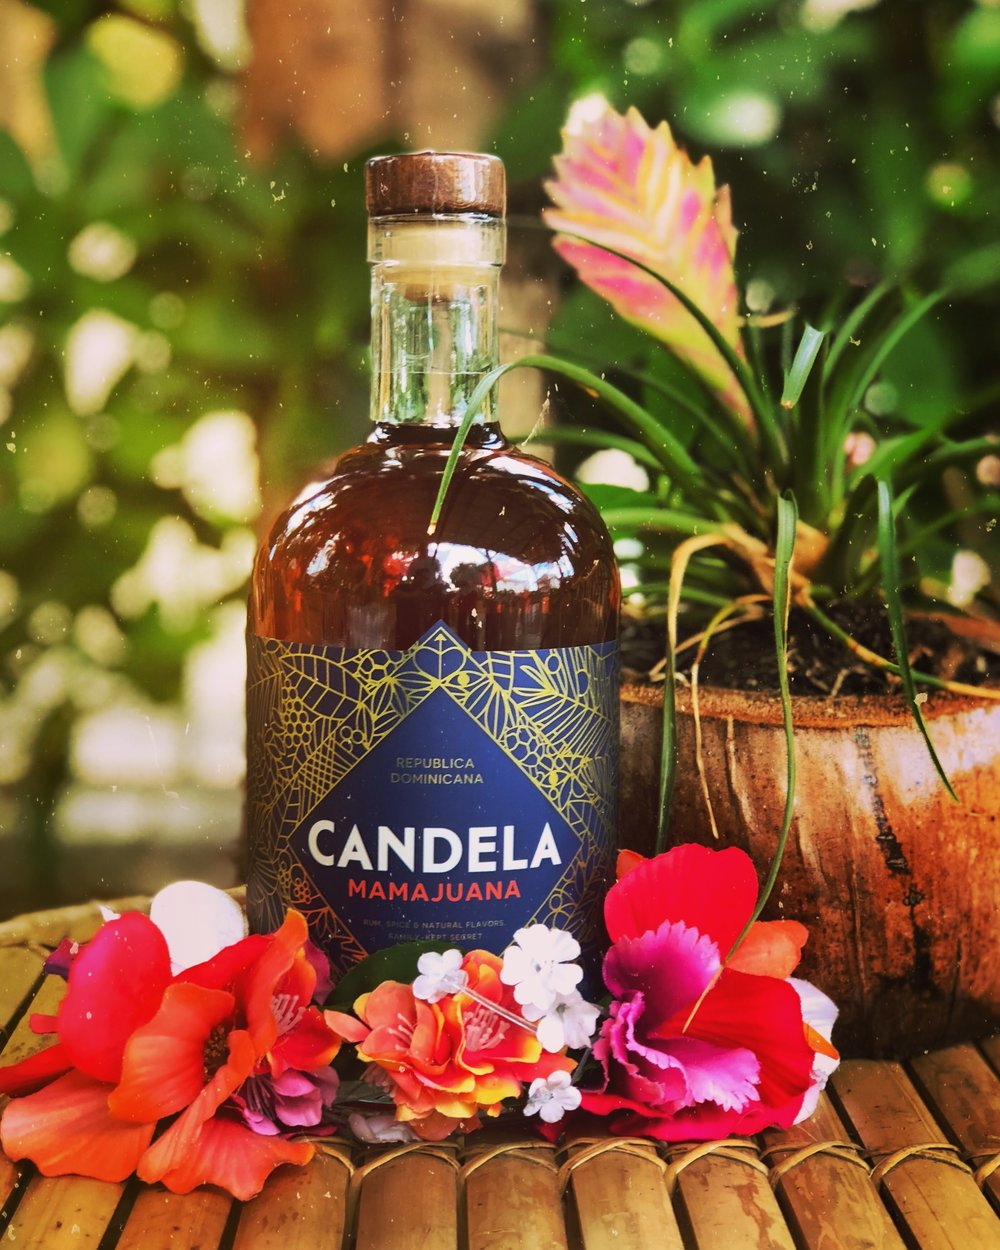 Not your average rum. - Our double-aging process, together with our signature blend of Mamajuana barks, spices and organic honey, makes this rum smoother than the Punta Cana breeze.Shop Now